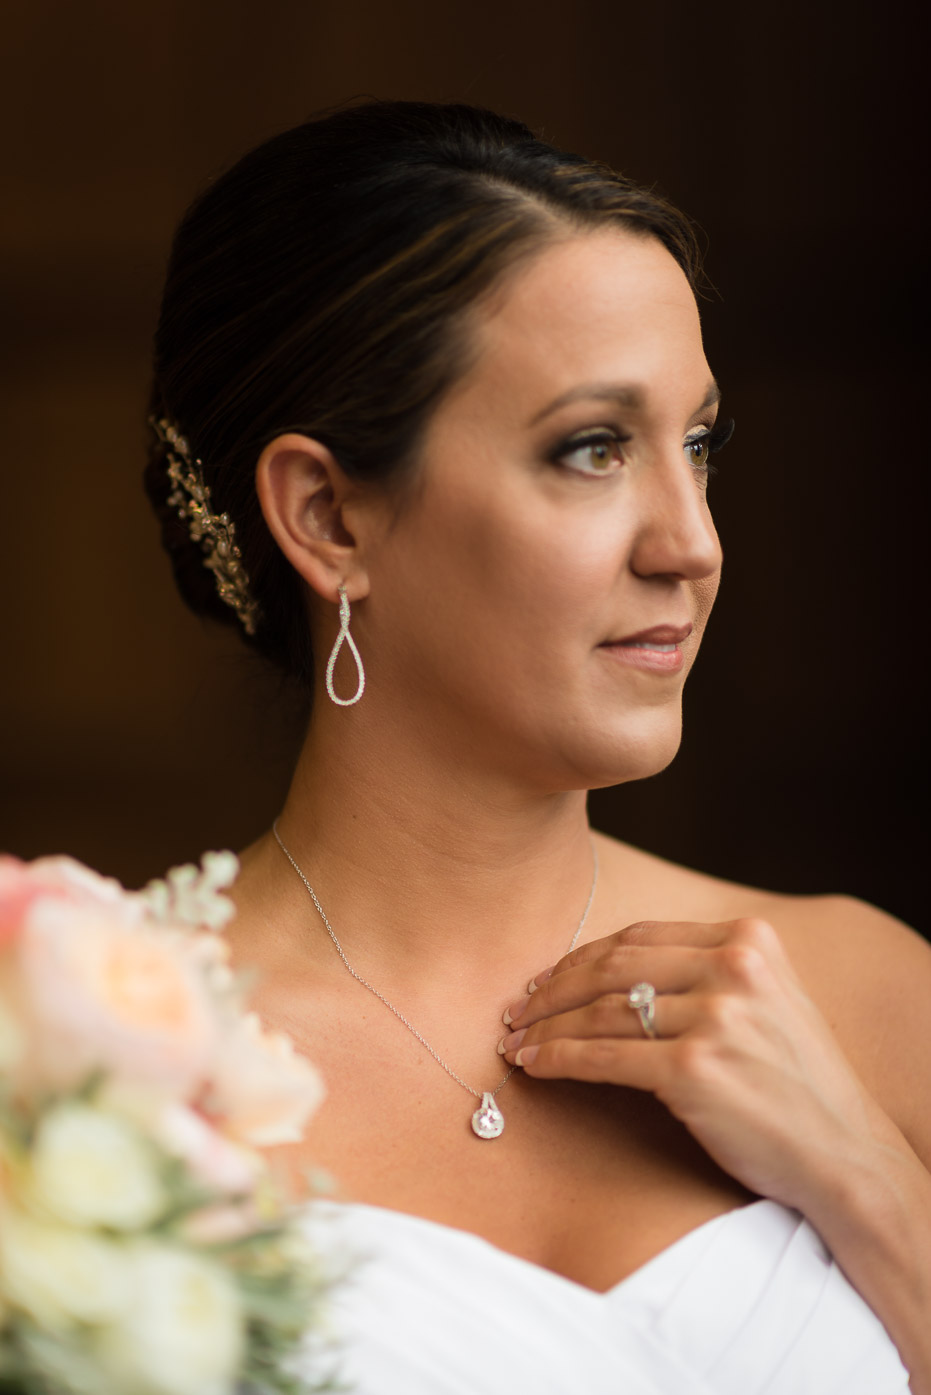 Natural Light portrait of bride on her wedding day